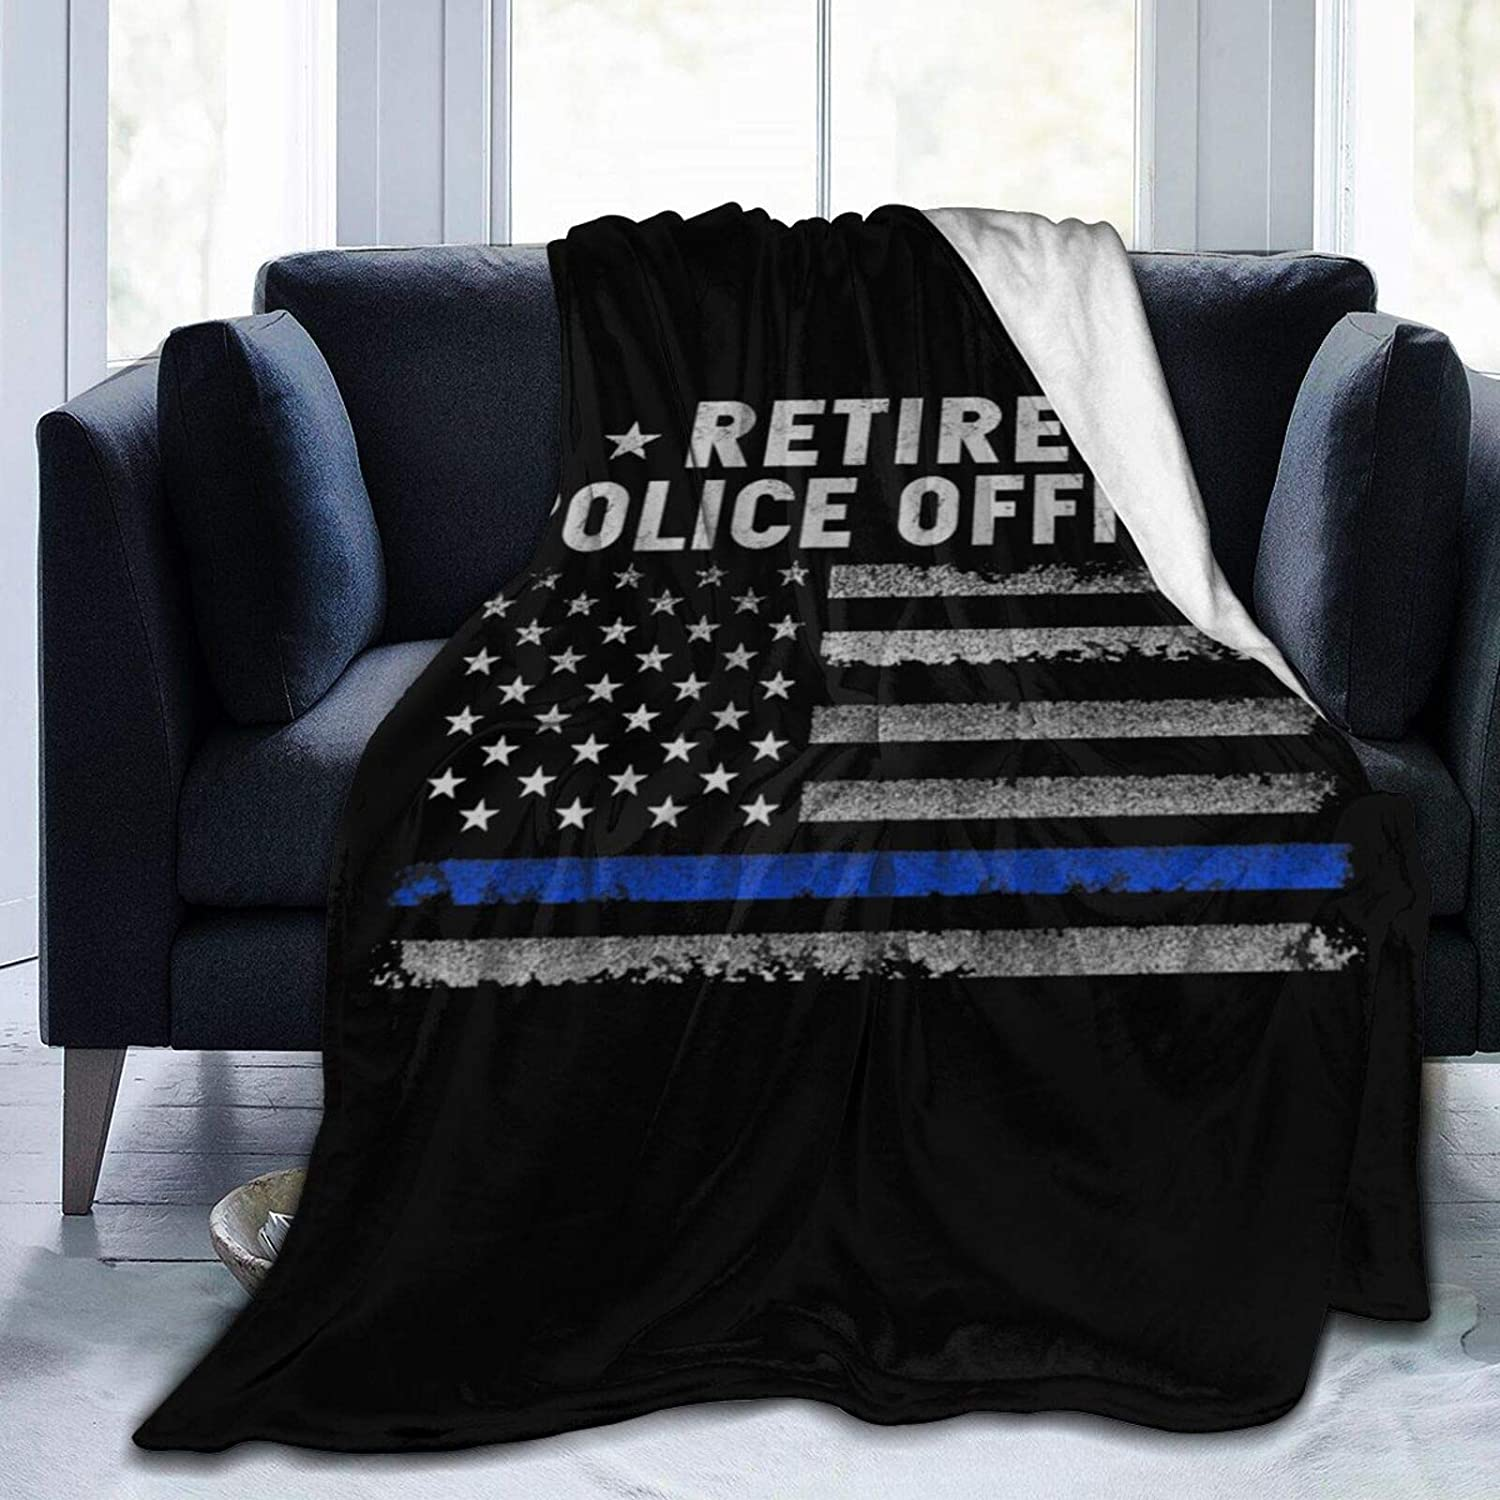 Voglawear Retired Police Officer USA F Proud Max 52% OFF Flag Memphis Mall